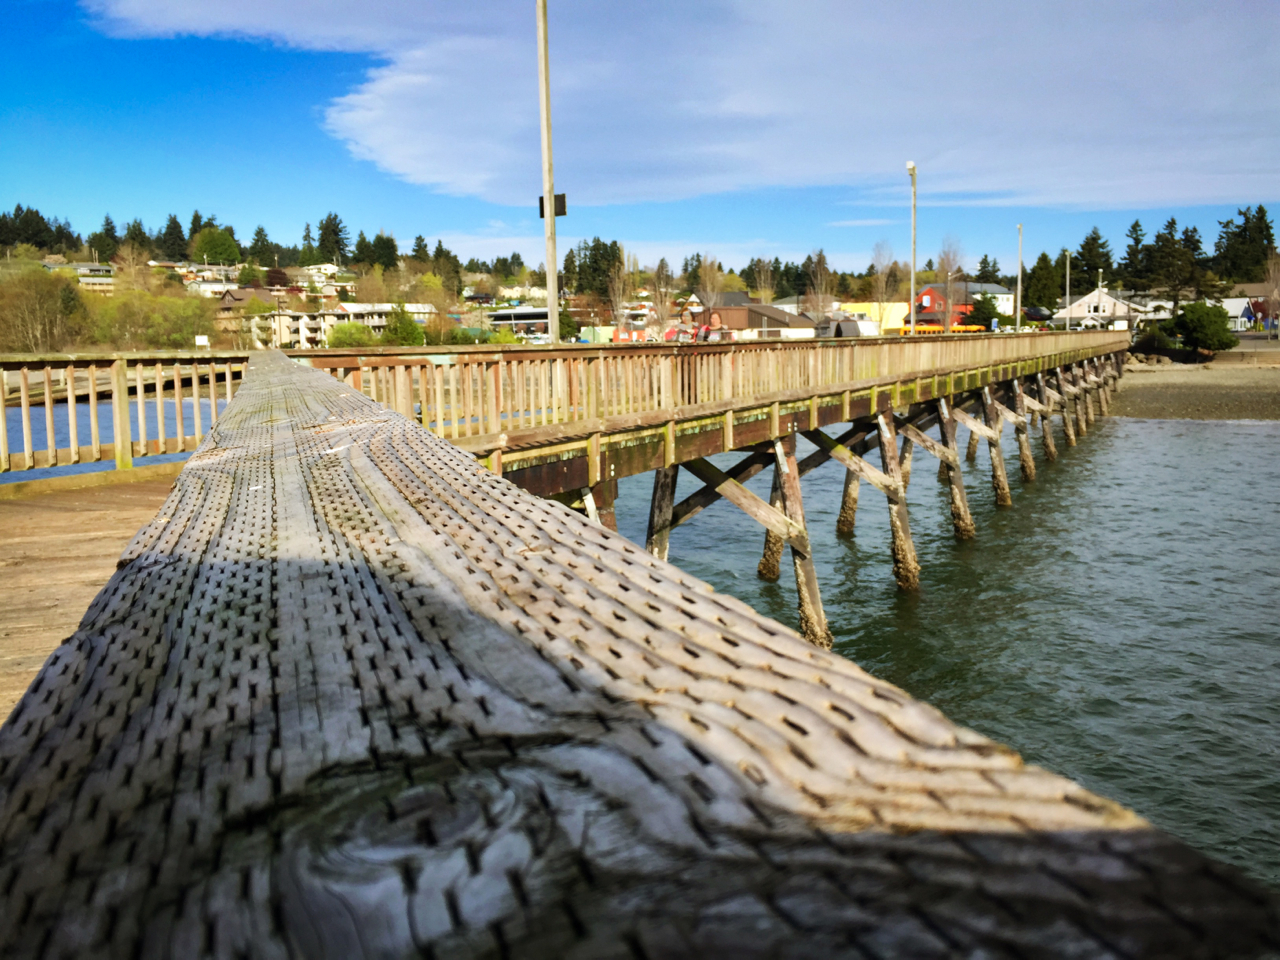 The Silverdale boardwalk